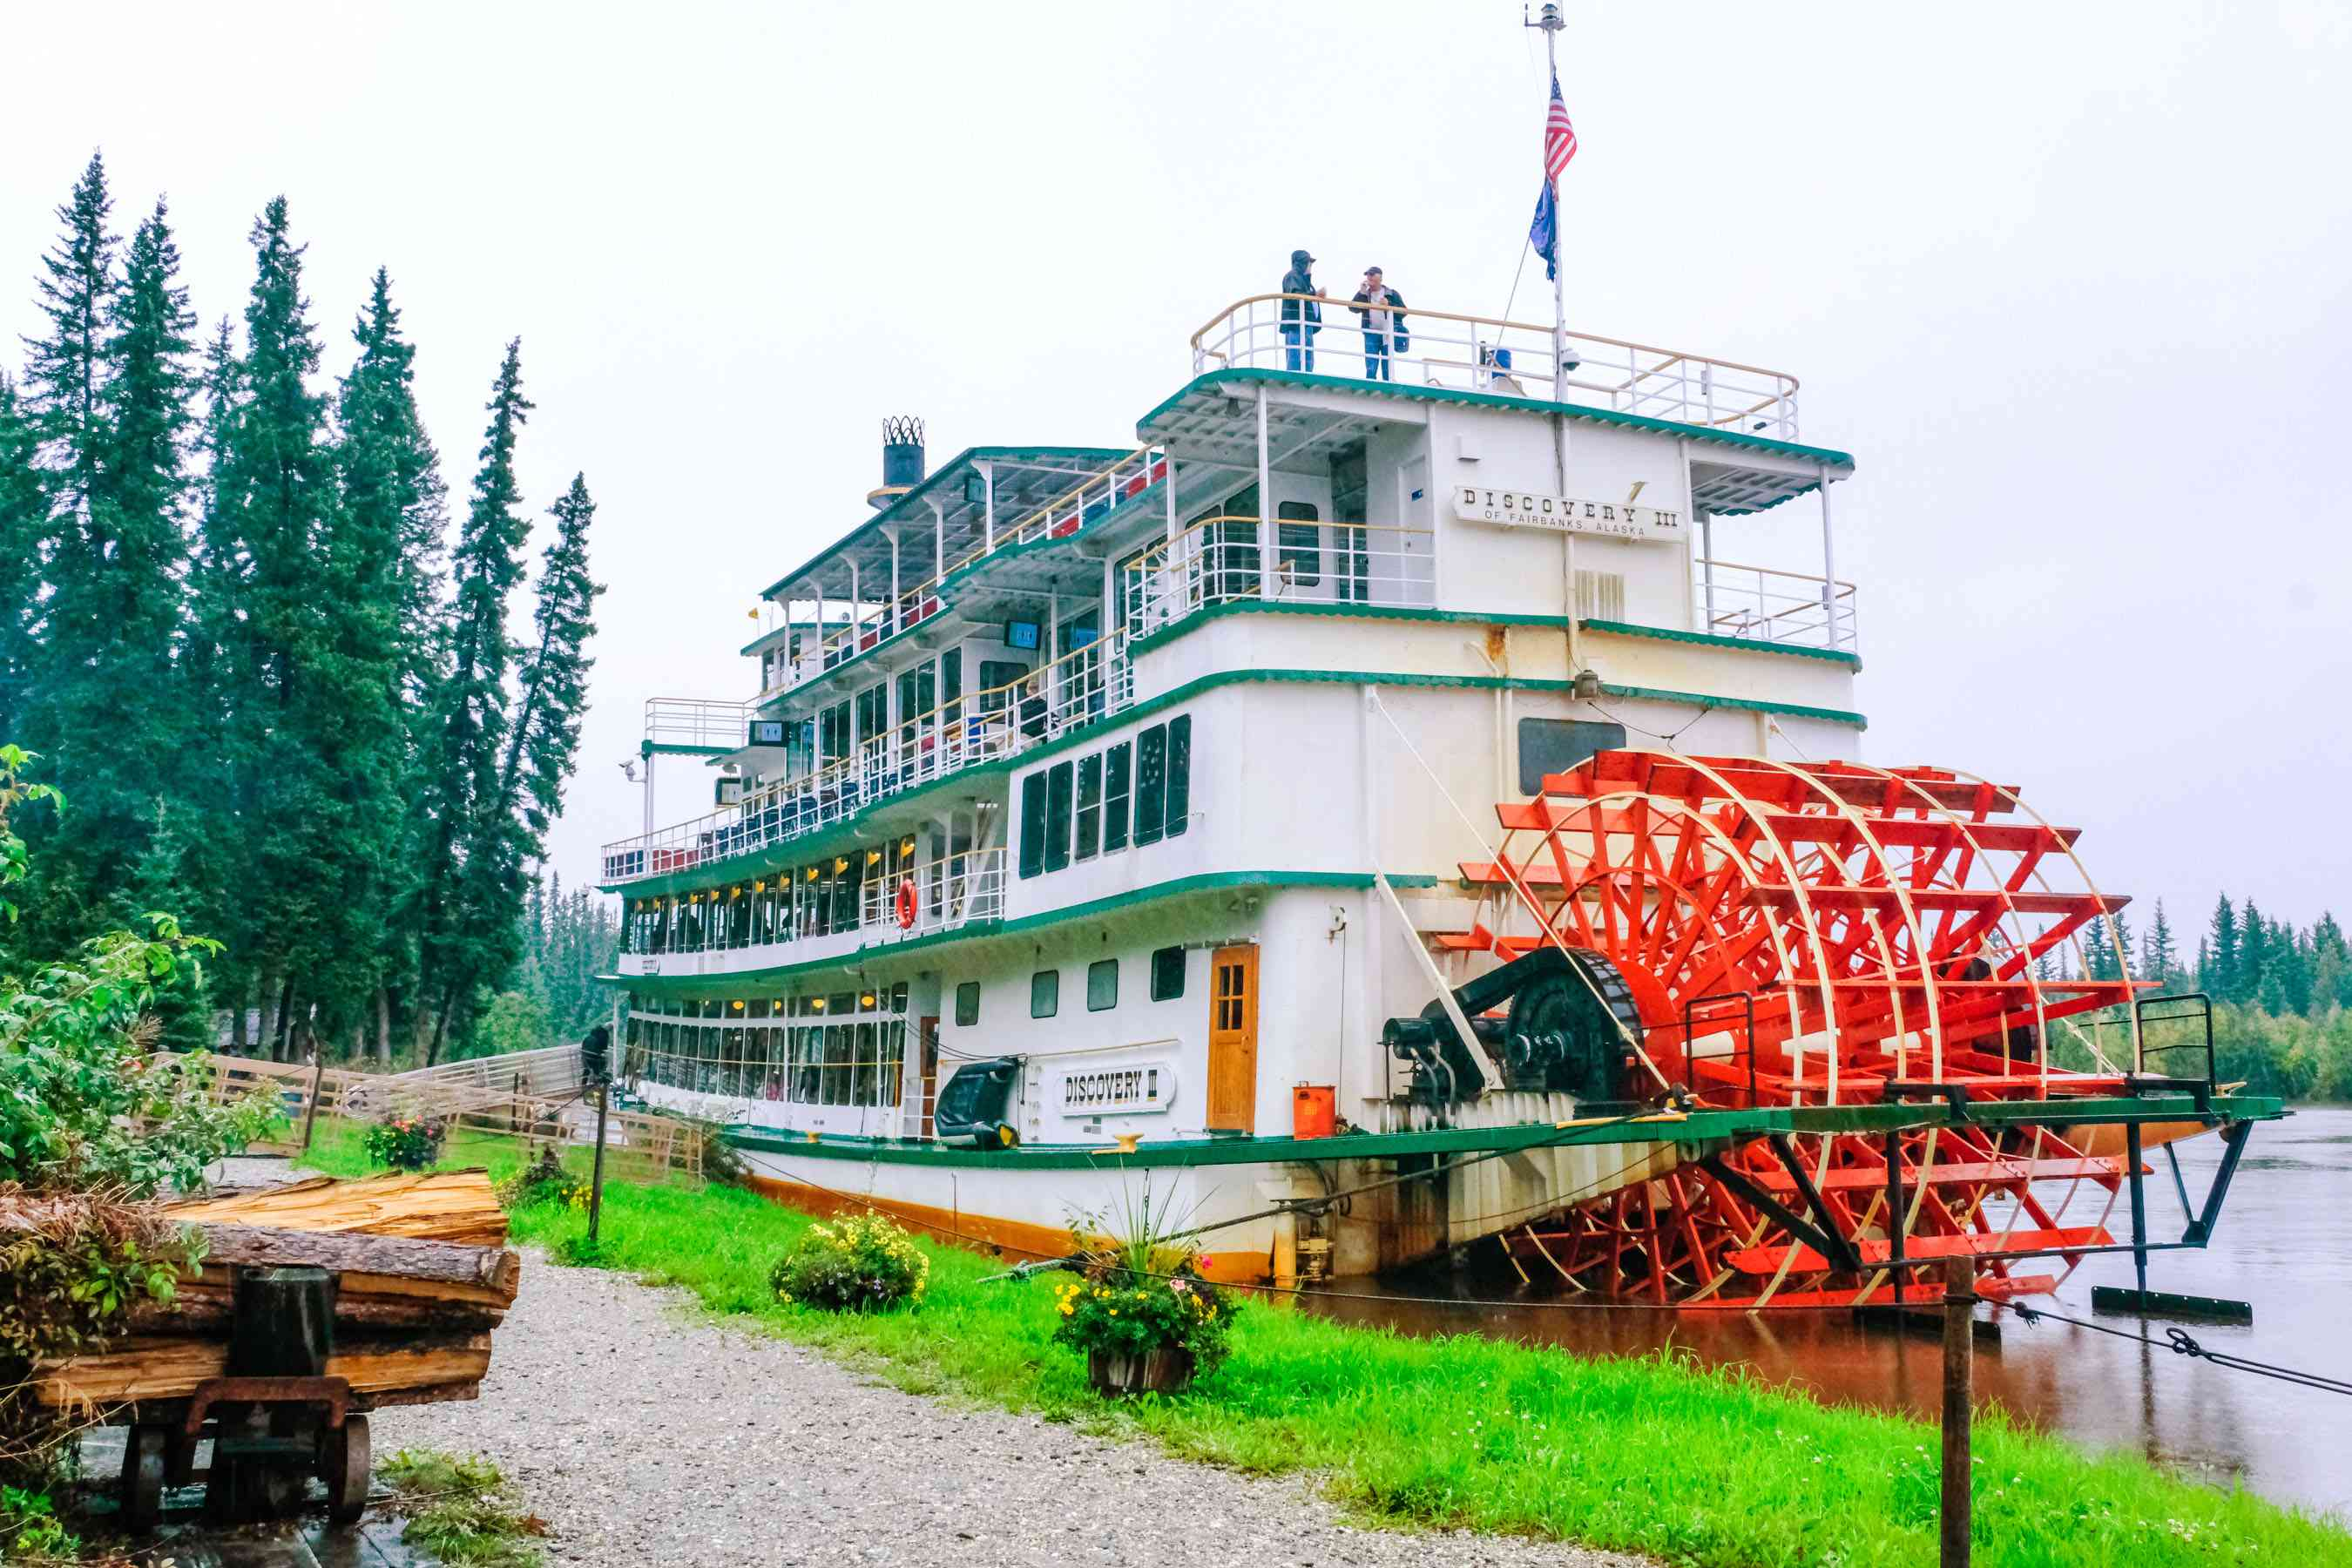 The Riverboat discovery